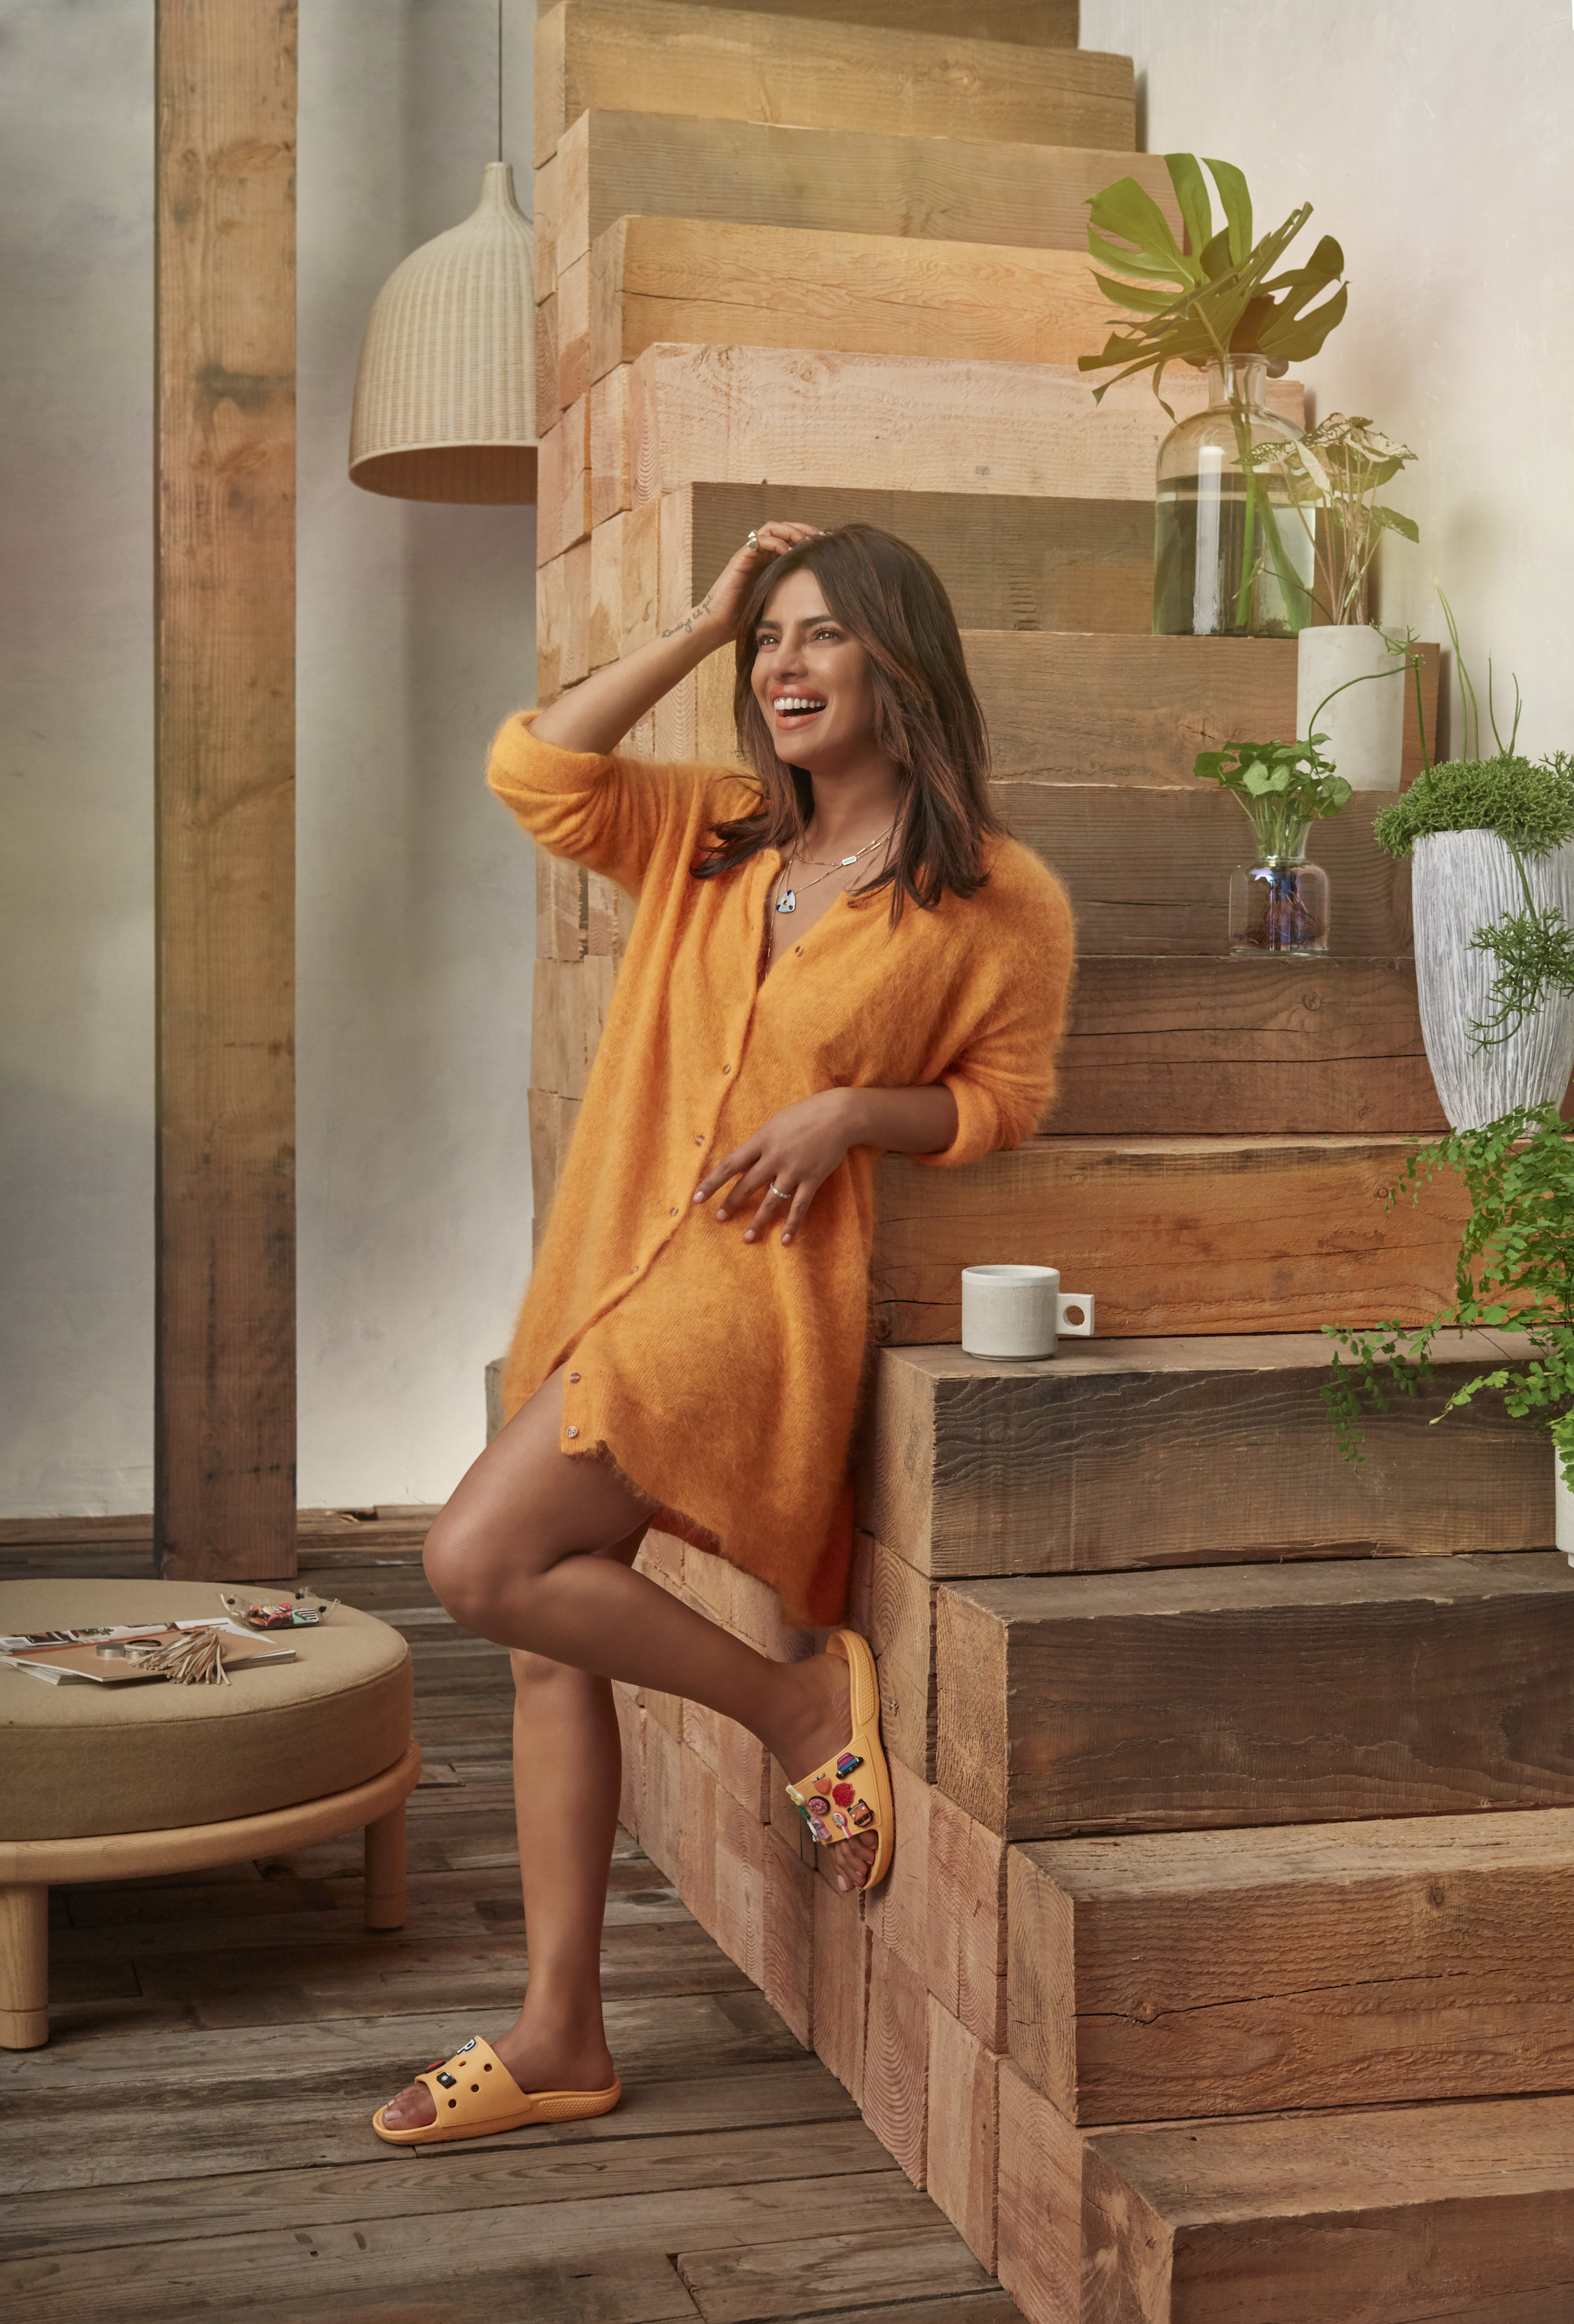 Crocs has named Priyanka Chopra as their new brand ambassador